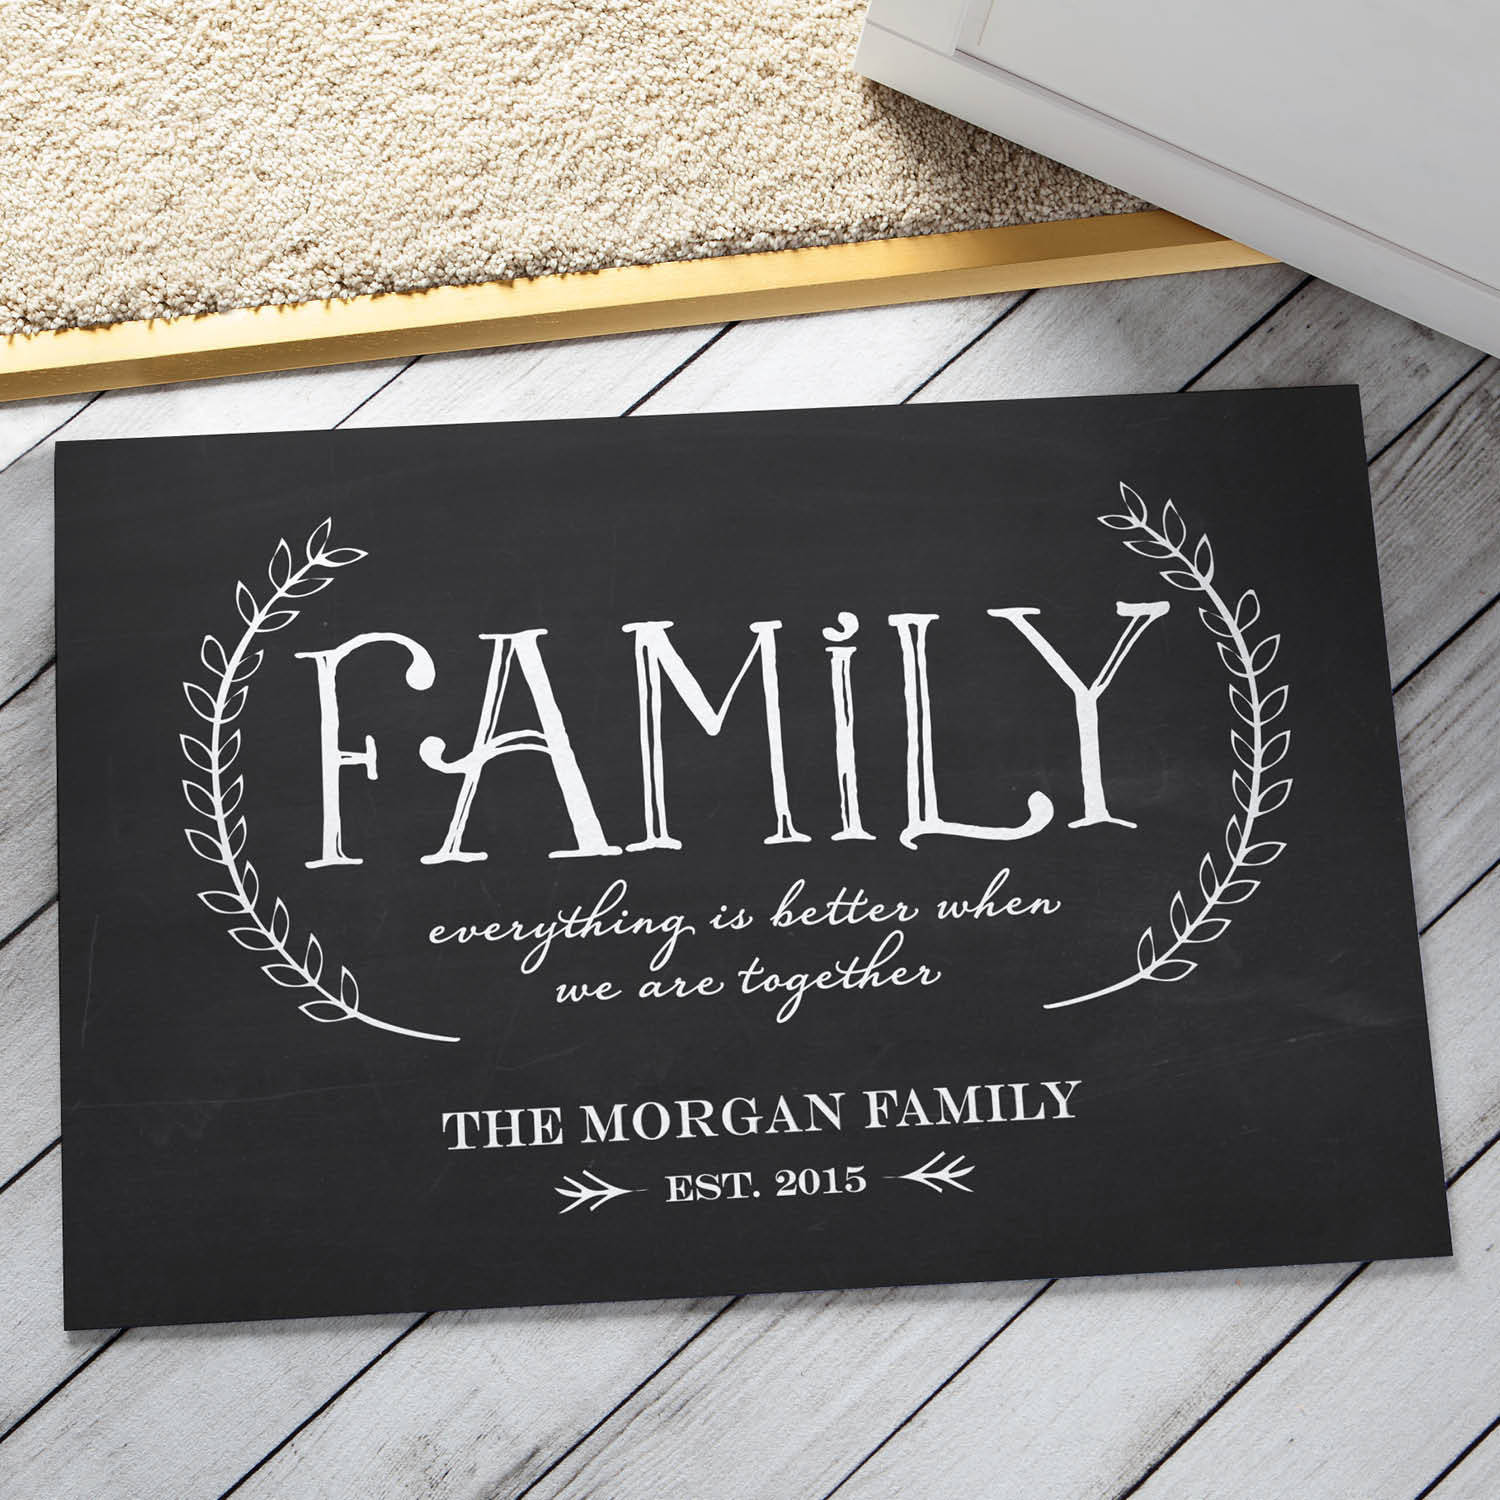 Personalized Our Family Doormat, Gray